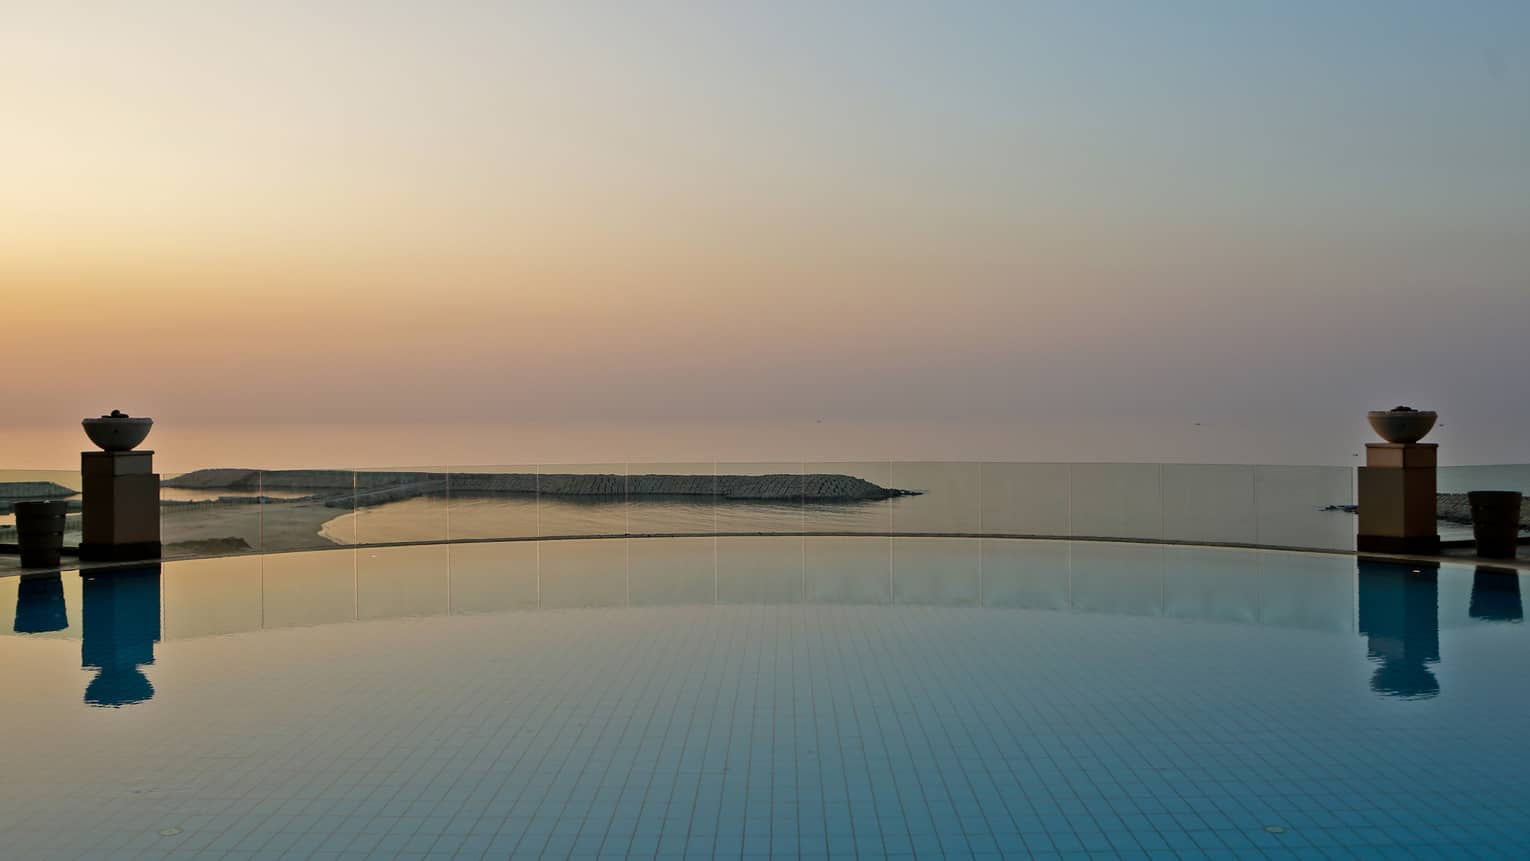 Calm and empty circular infinity pool overlooking Mediterranean Sea at sunset